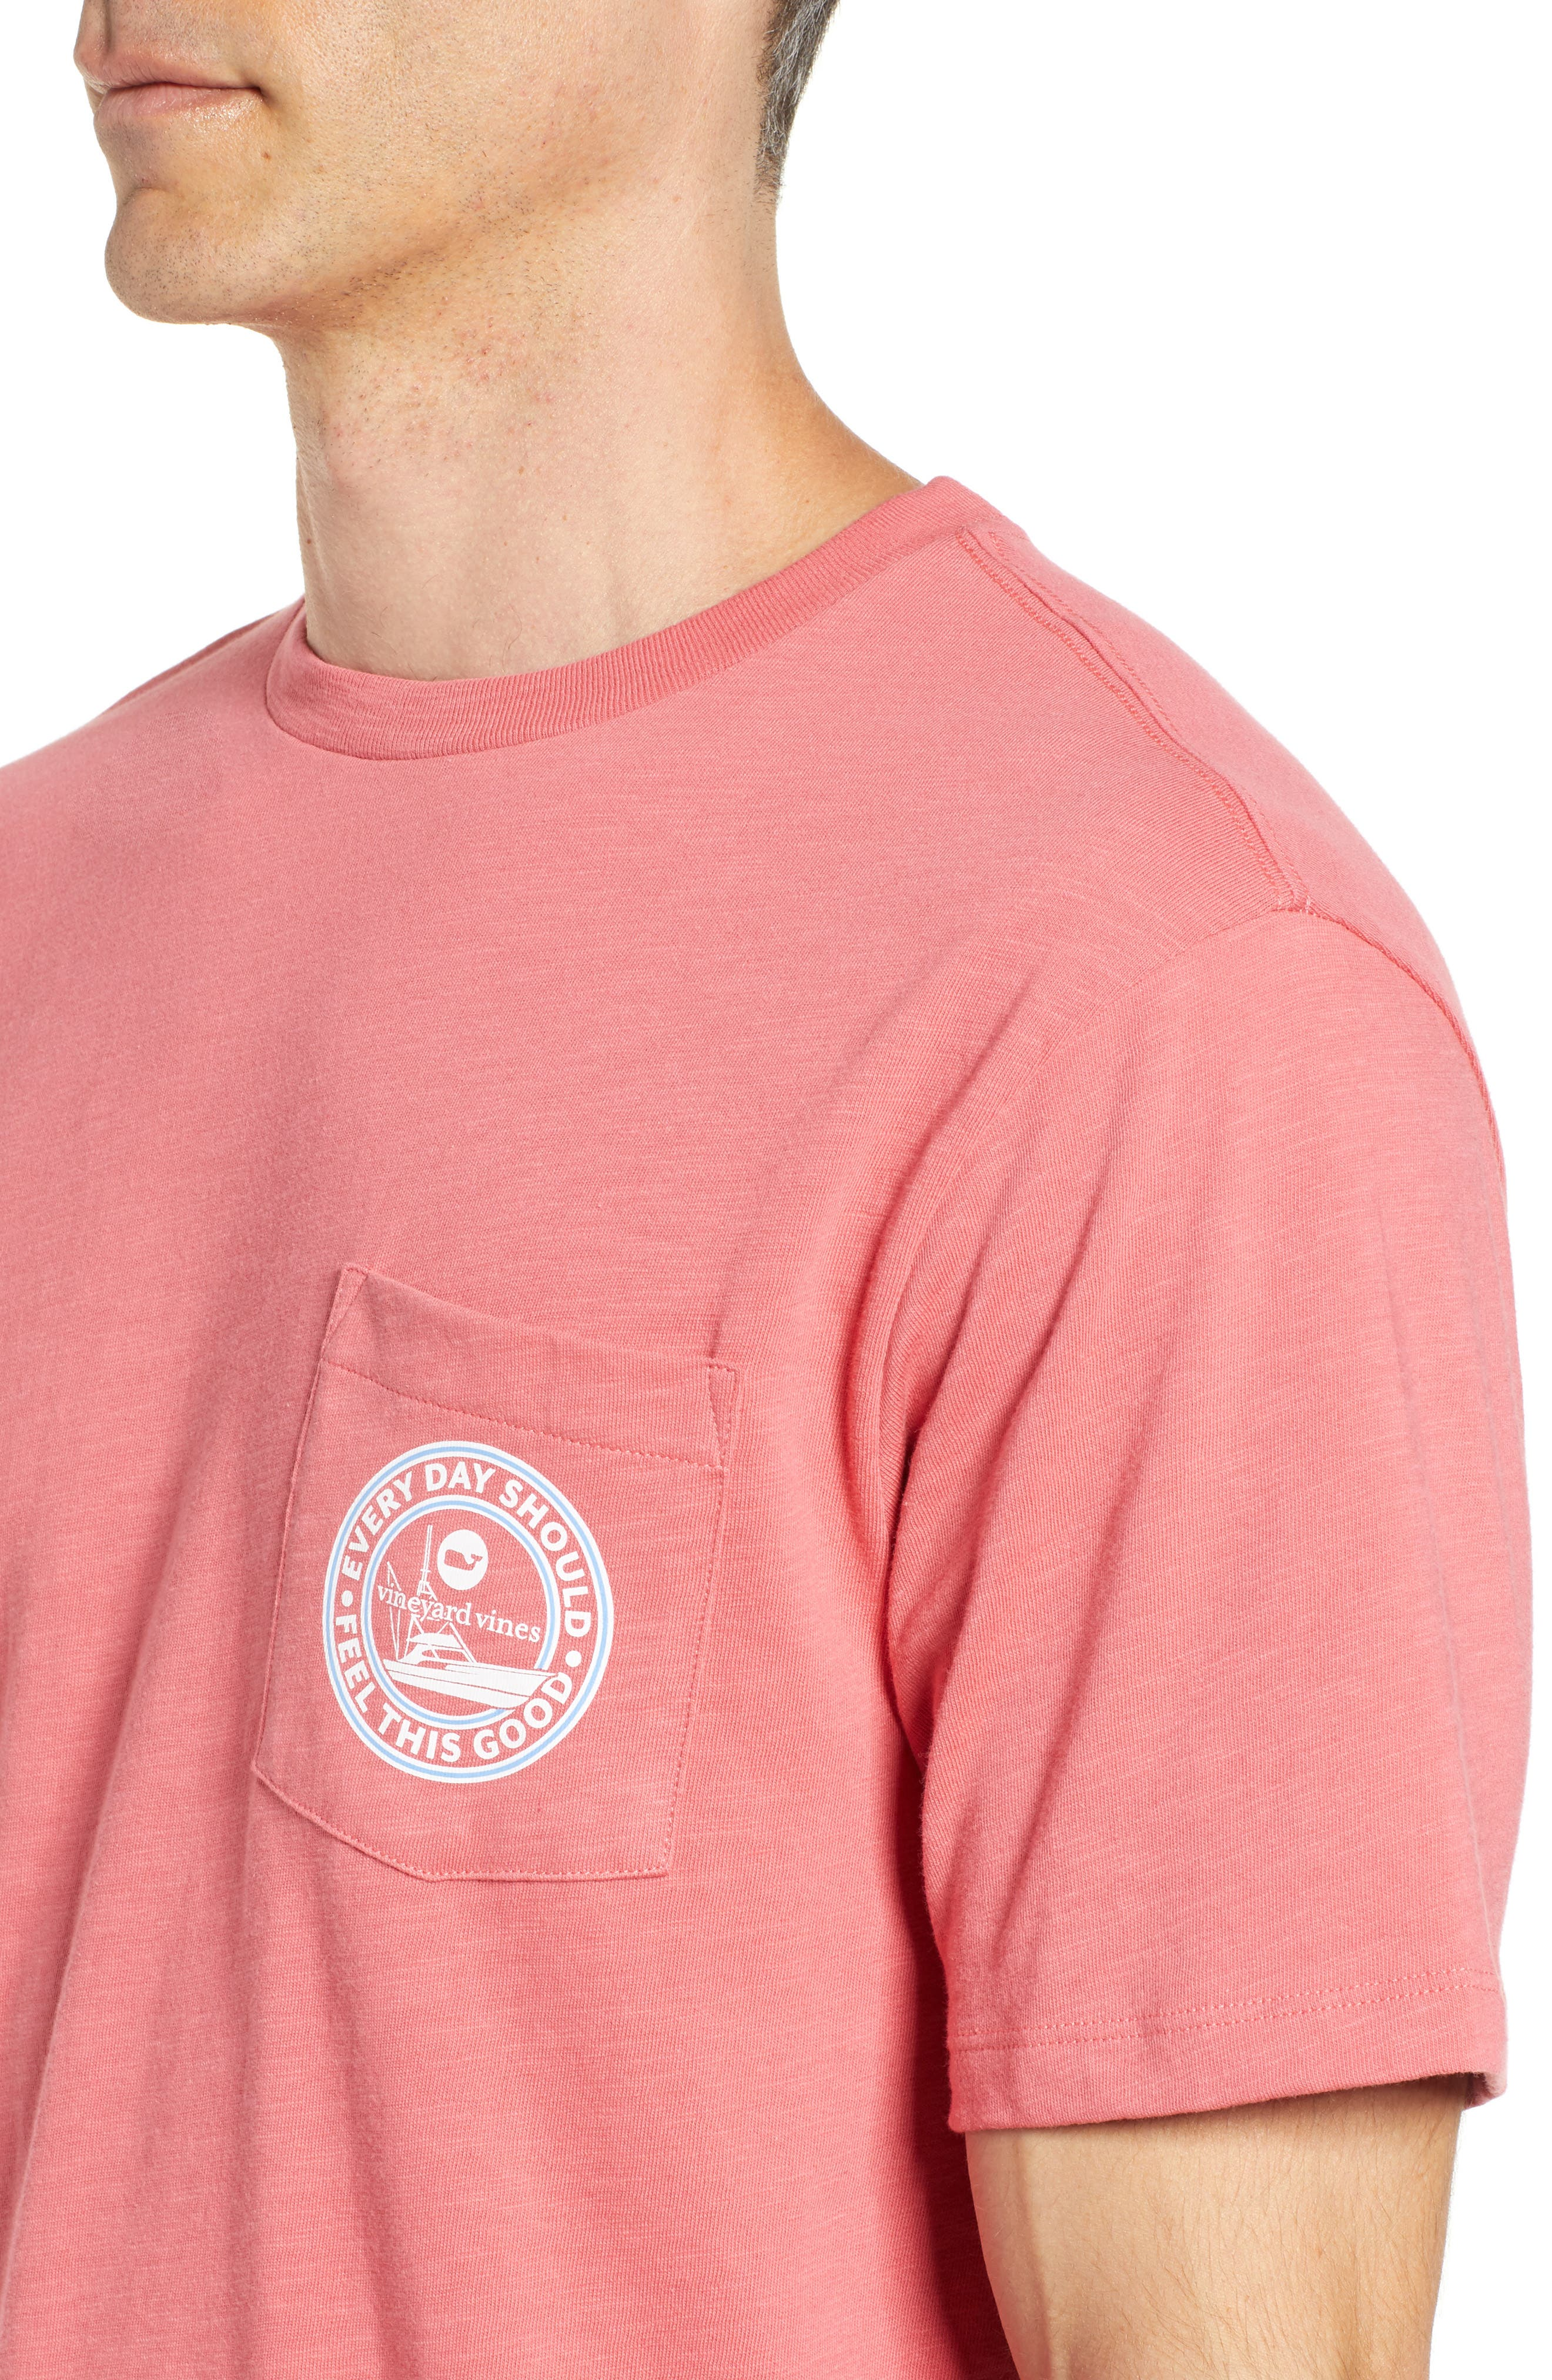 Every Day Should Feel This Good Pocket T-Shirt,                             Alternate thumbnail 4, color,                             Jetty Red